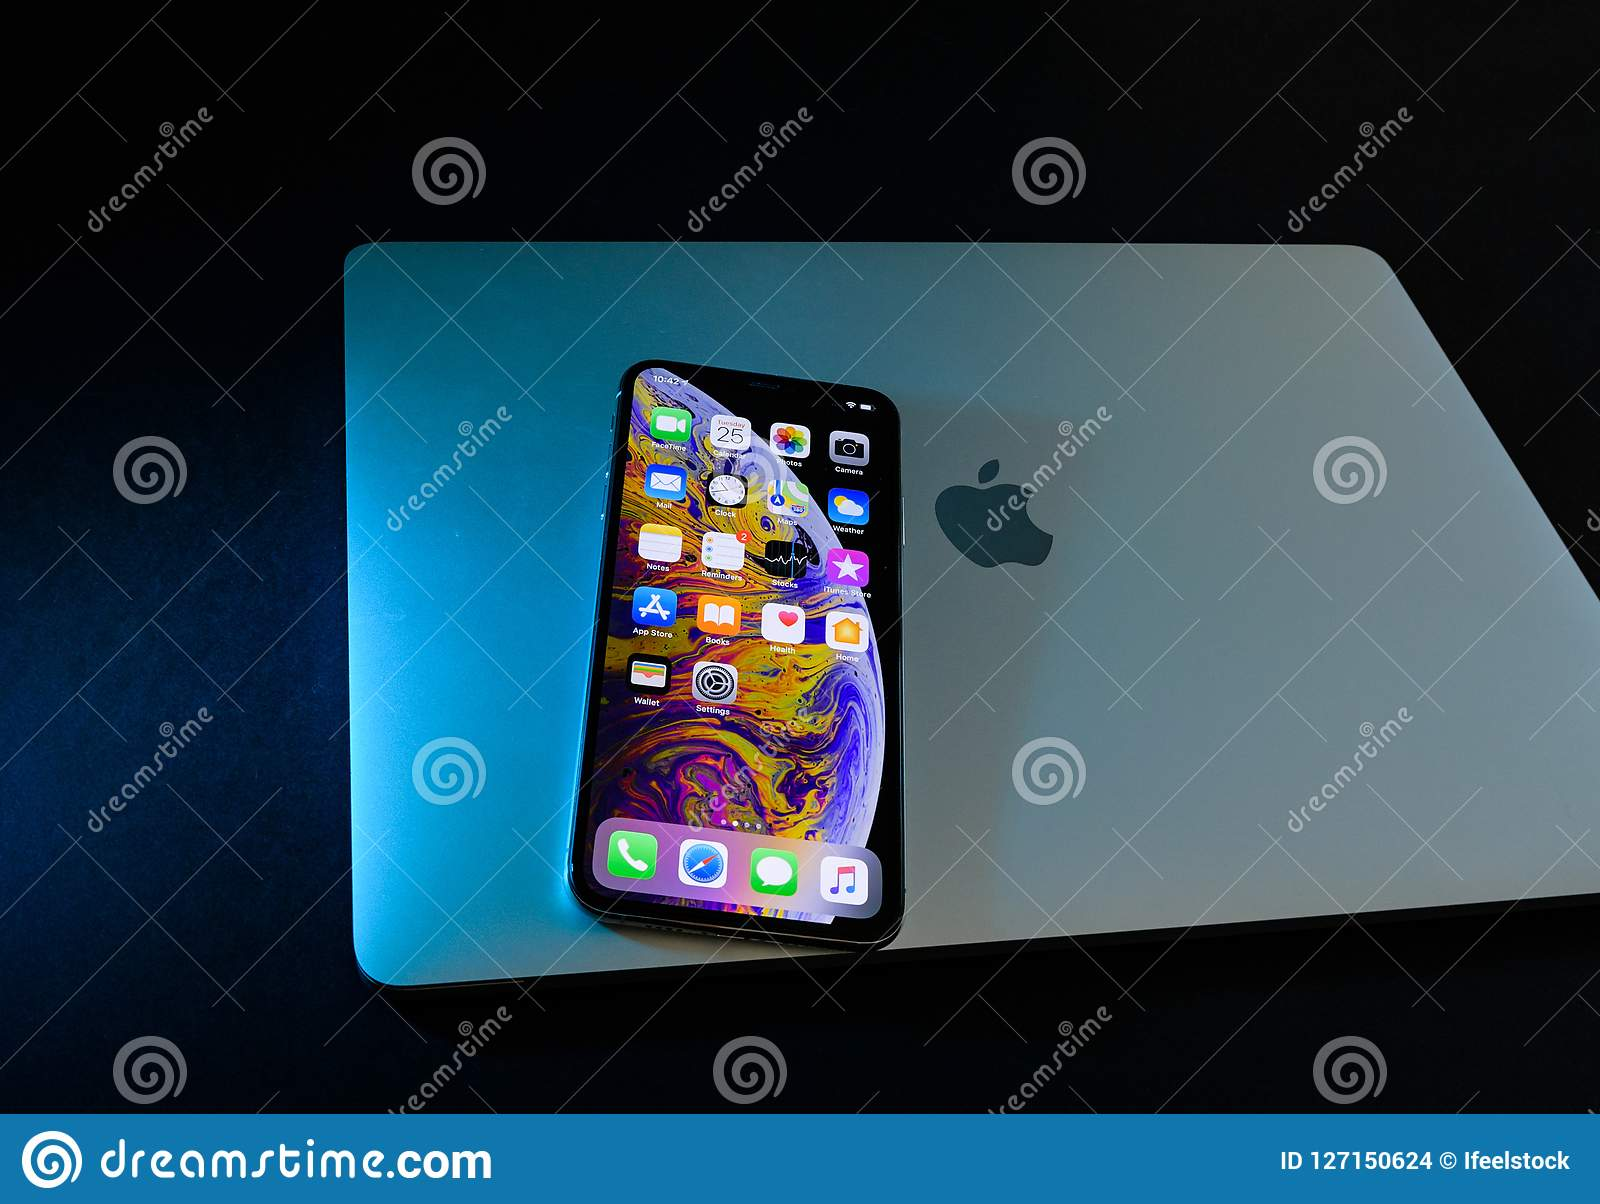 How To Close Apps On The Iphone 10 Max How to Close Apps on